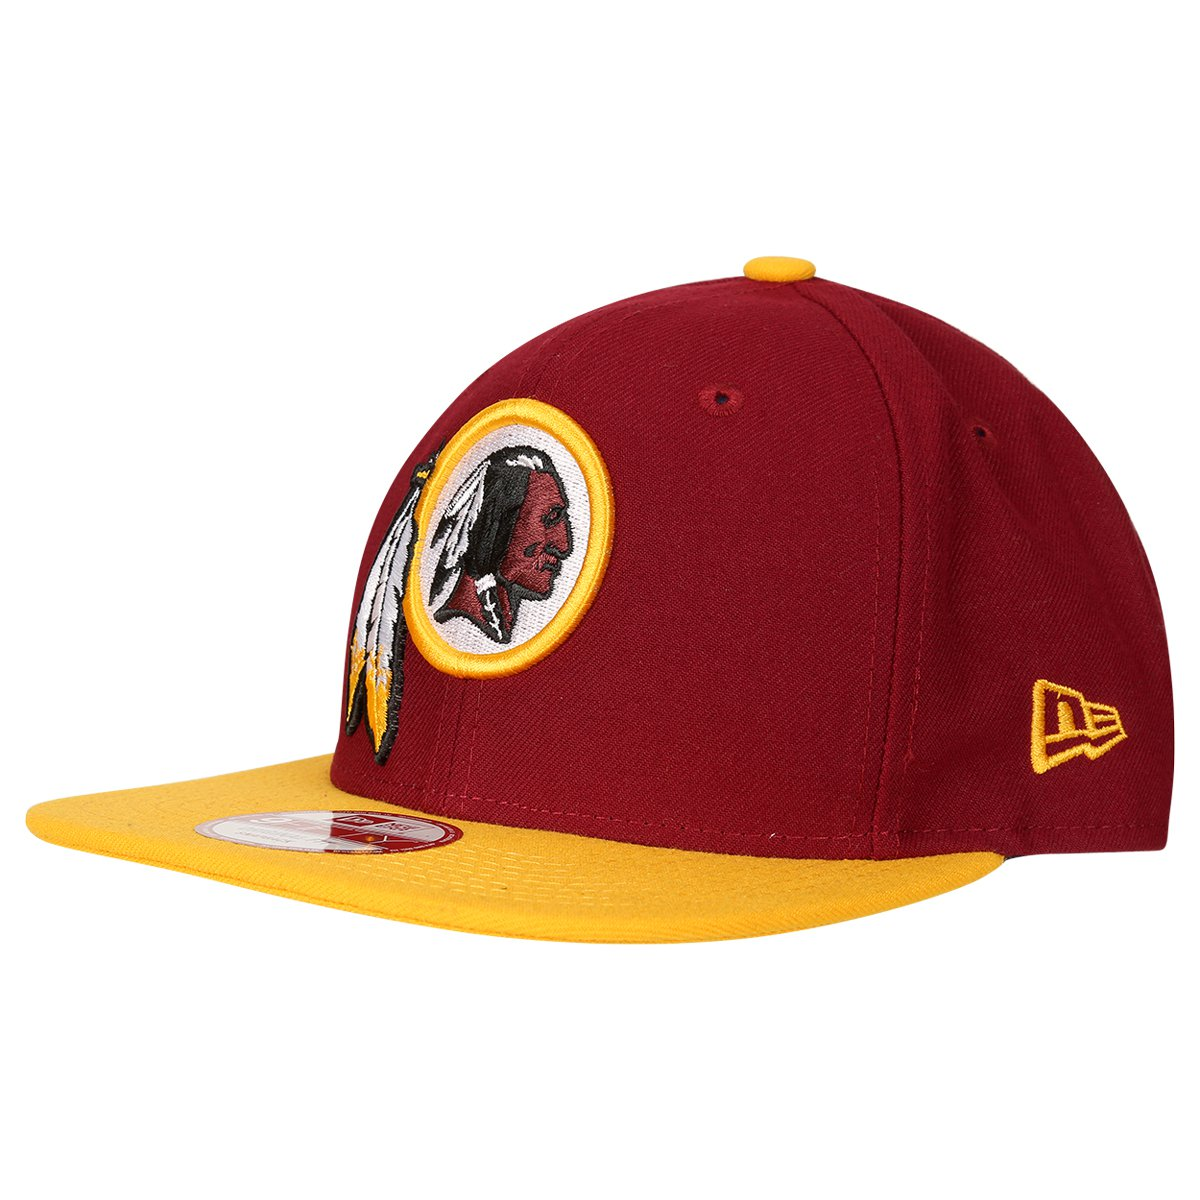 Boné New Era 950 NFL Of Sn Classic Team Washington Redskins